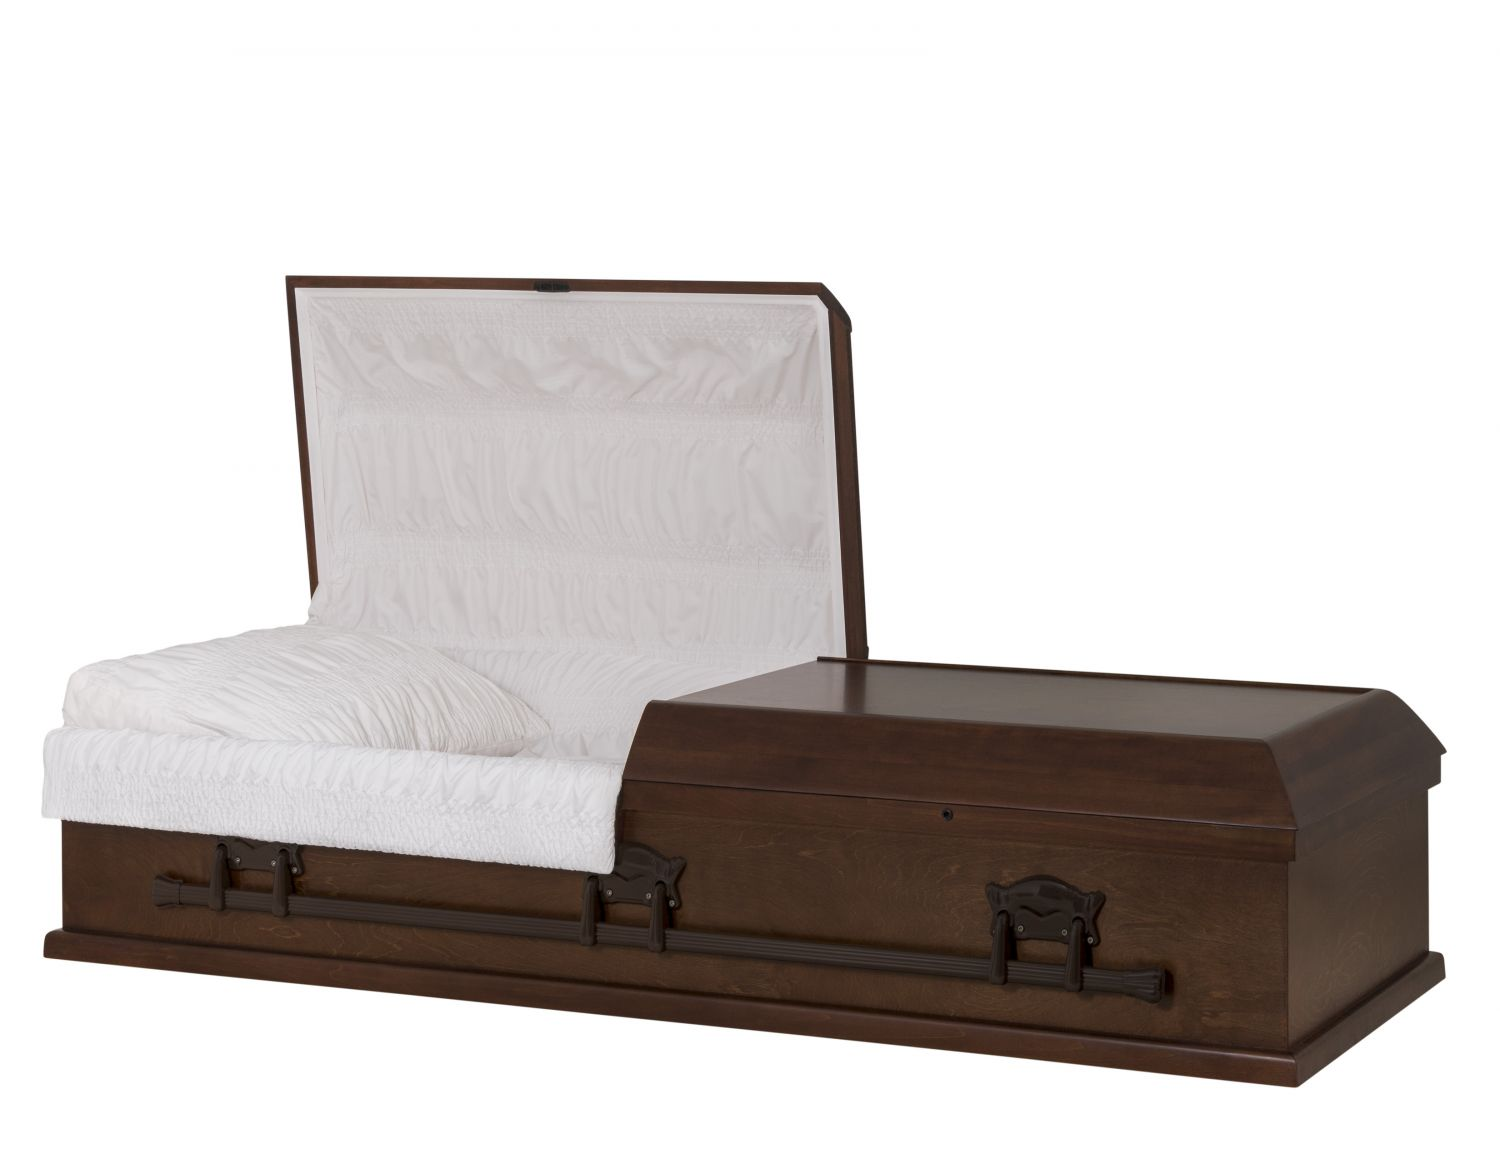 Concept Caskets 10U15-00010-N POPLAR CASKET OPEN GRAIN TAFFETA SOUTH MAHOGANY WOOD FIBER NO 909    3 X 0 BRONZE